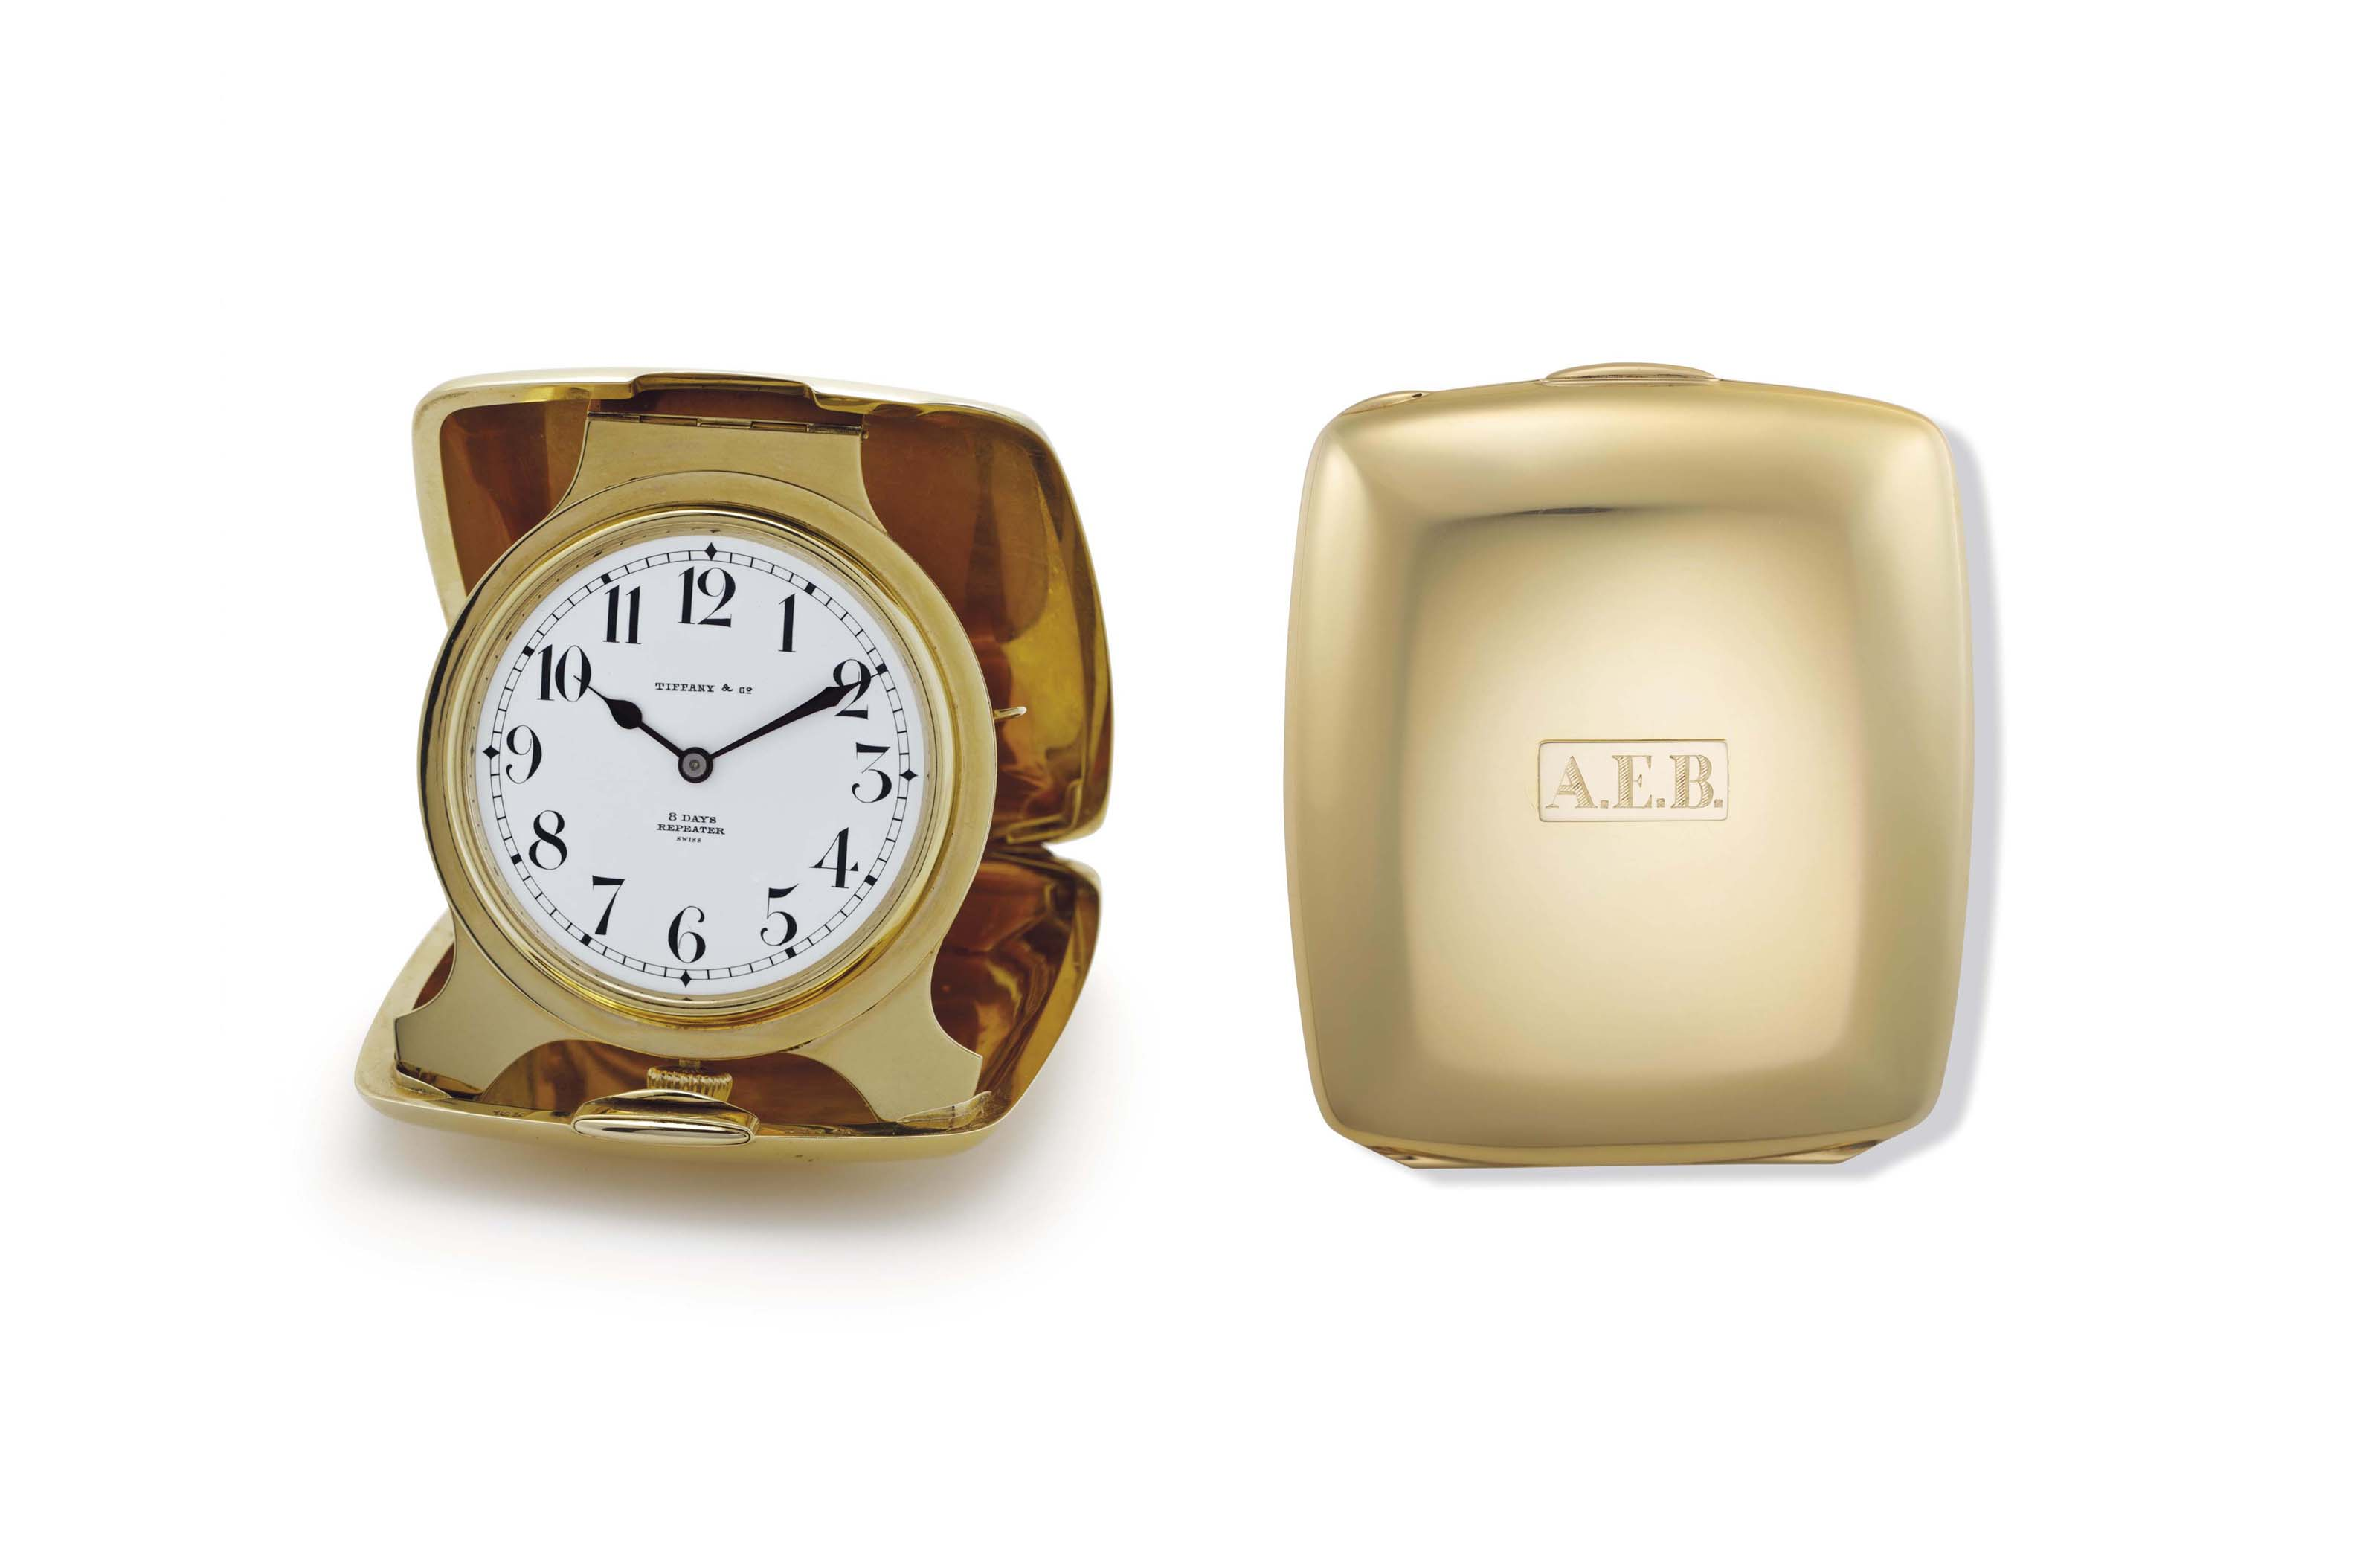 Wittnauer/Tiffany & Co. An 18k Gold Quarter Repeating Folding Travel Clock